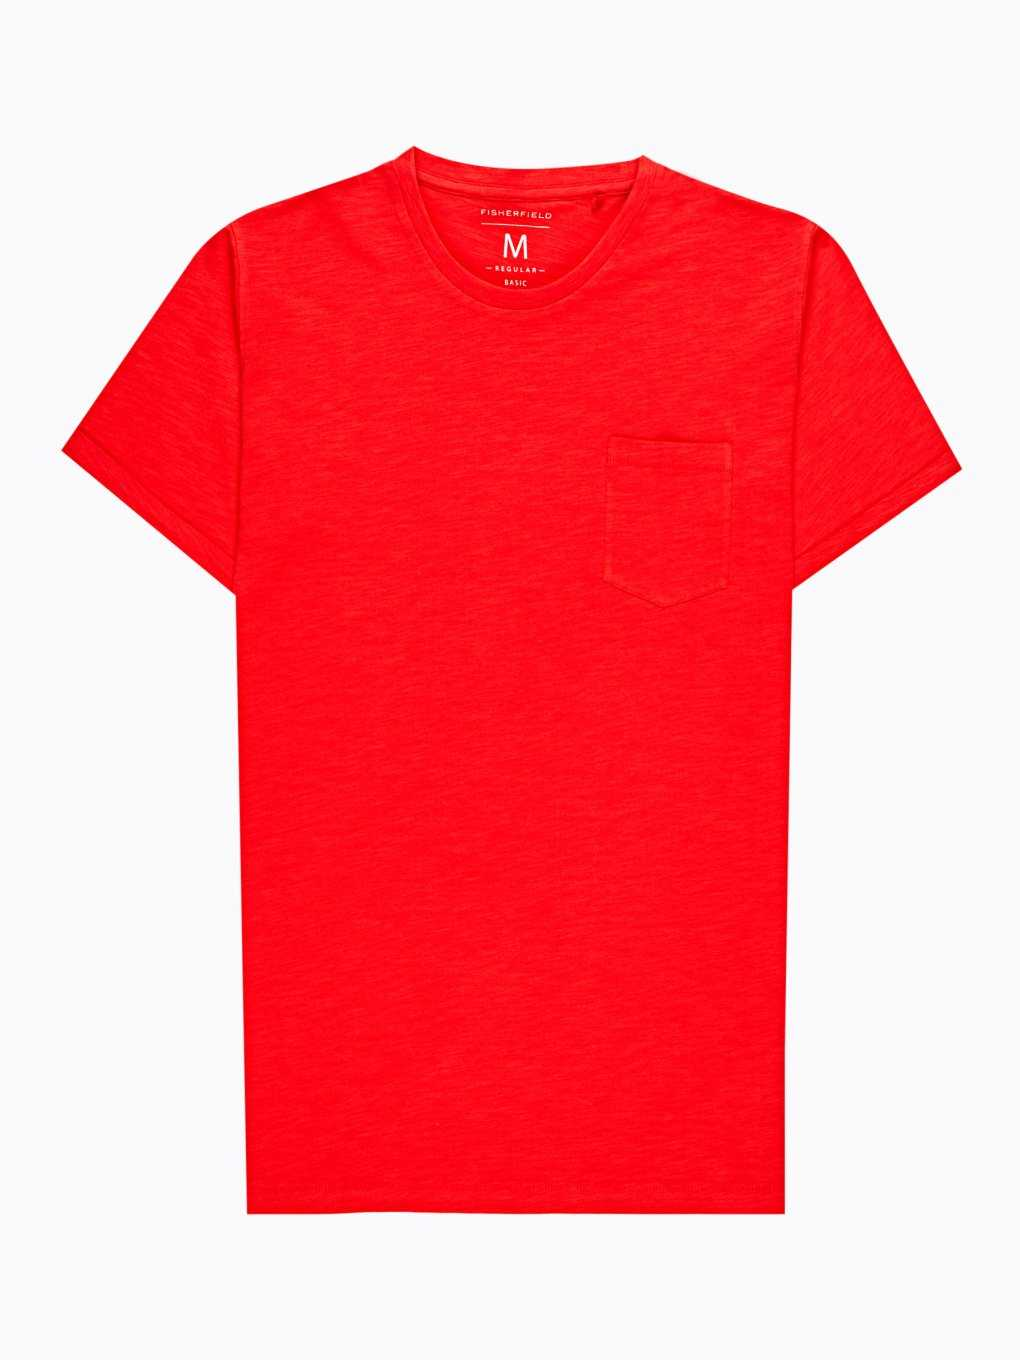 Basic slub jersey t-shirt with chest pocket